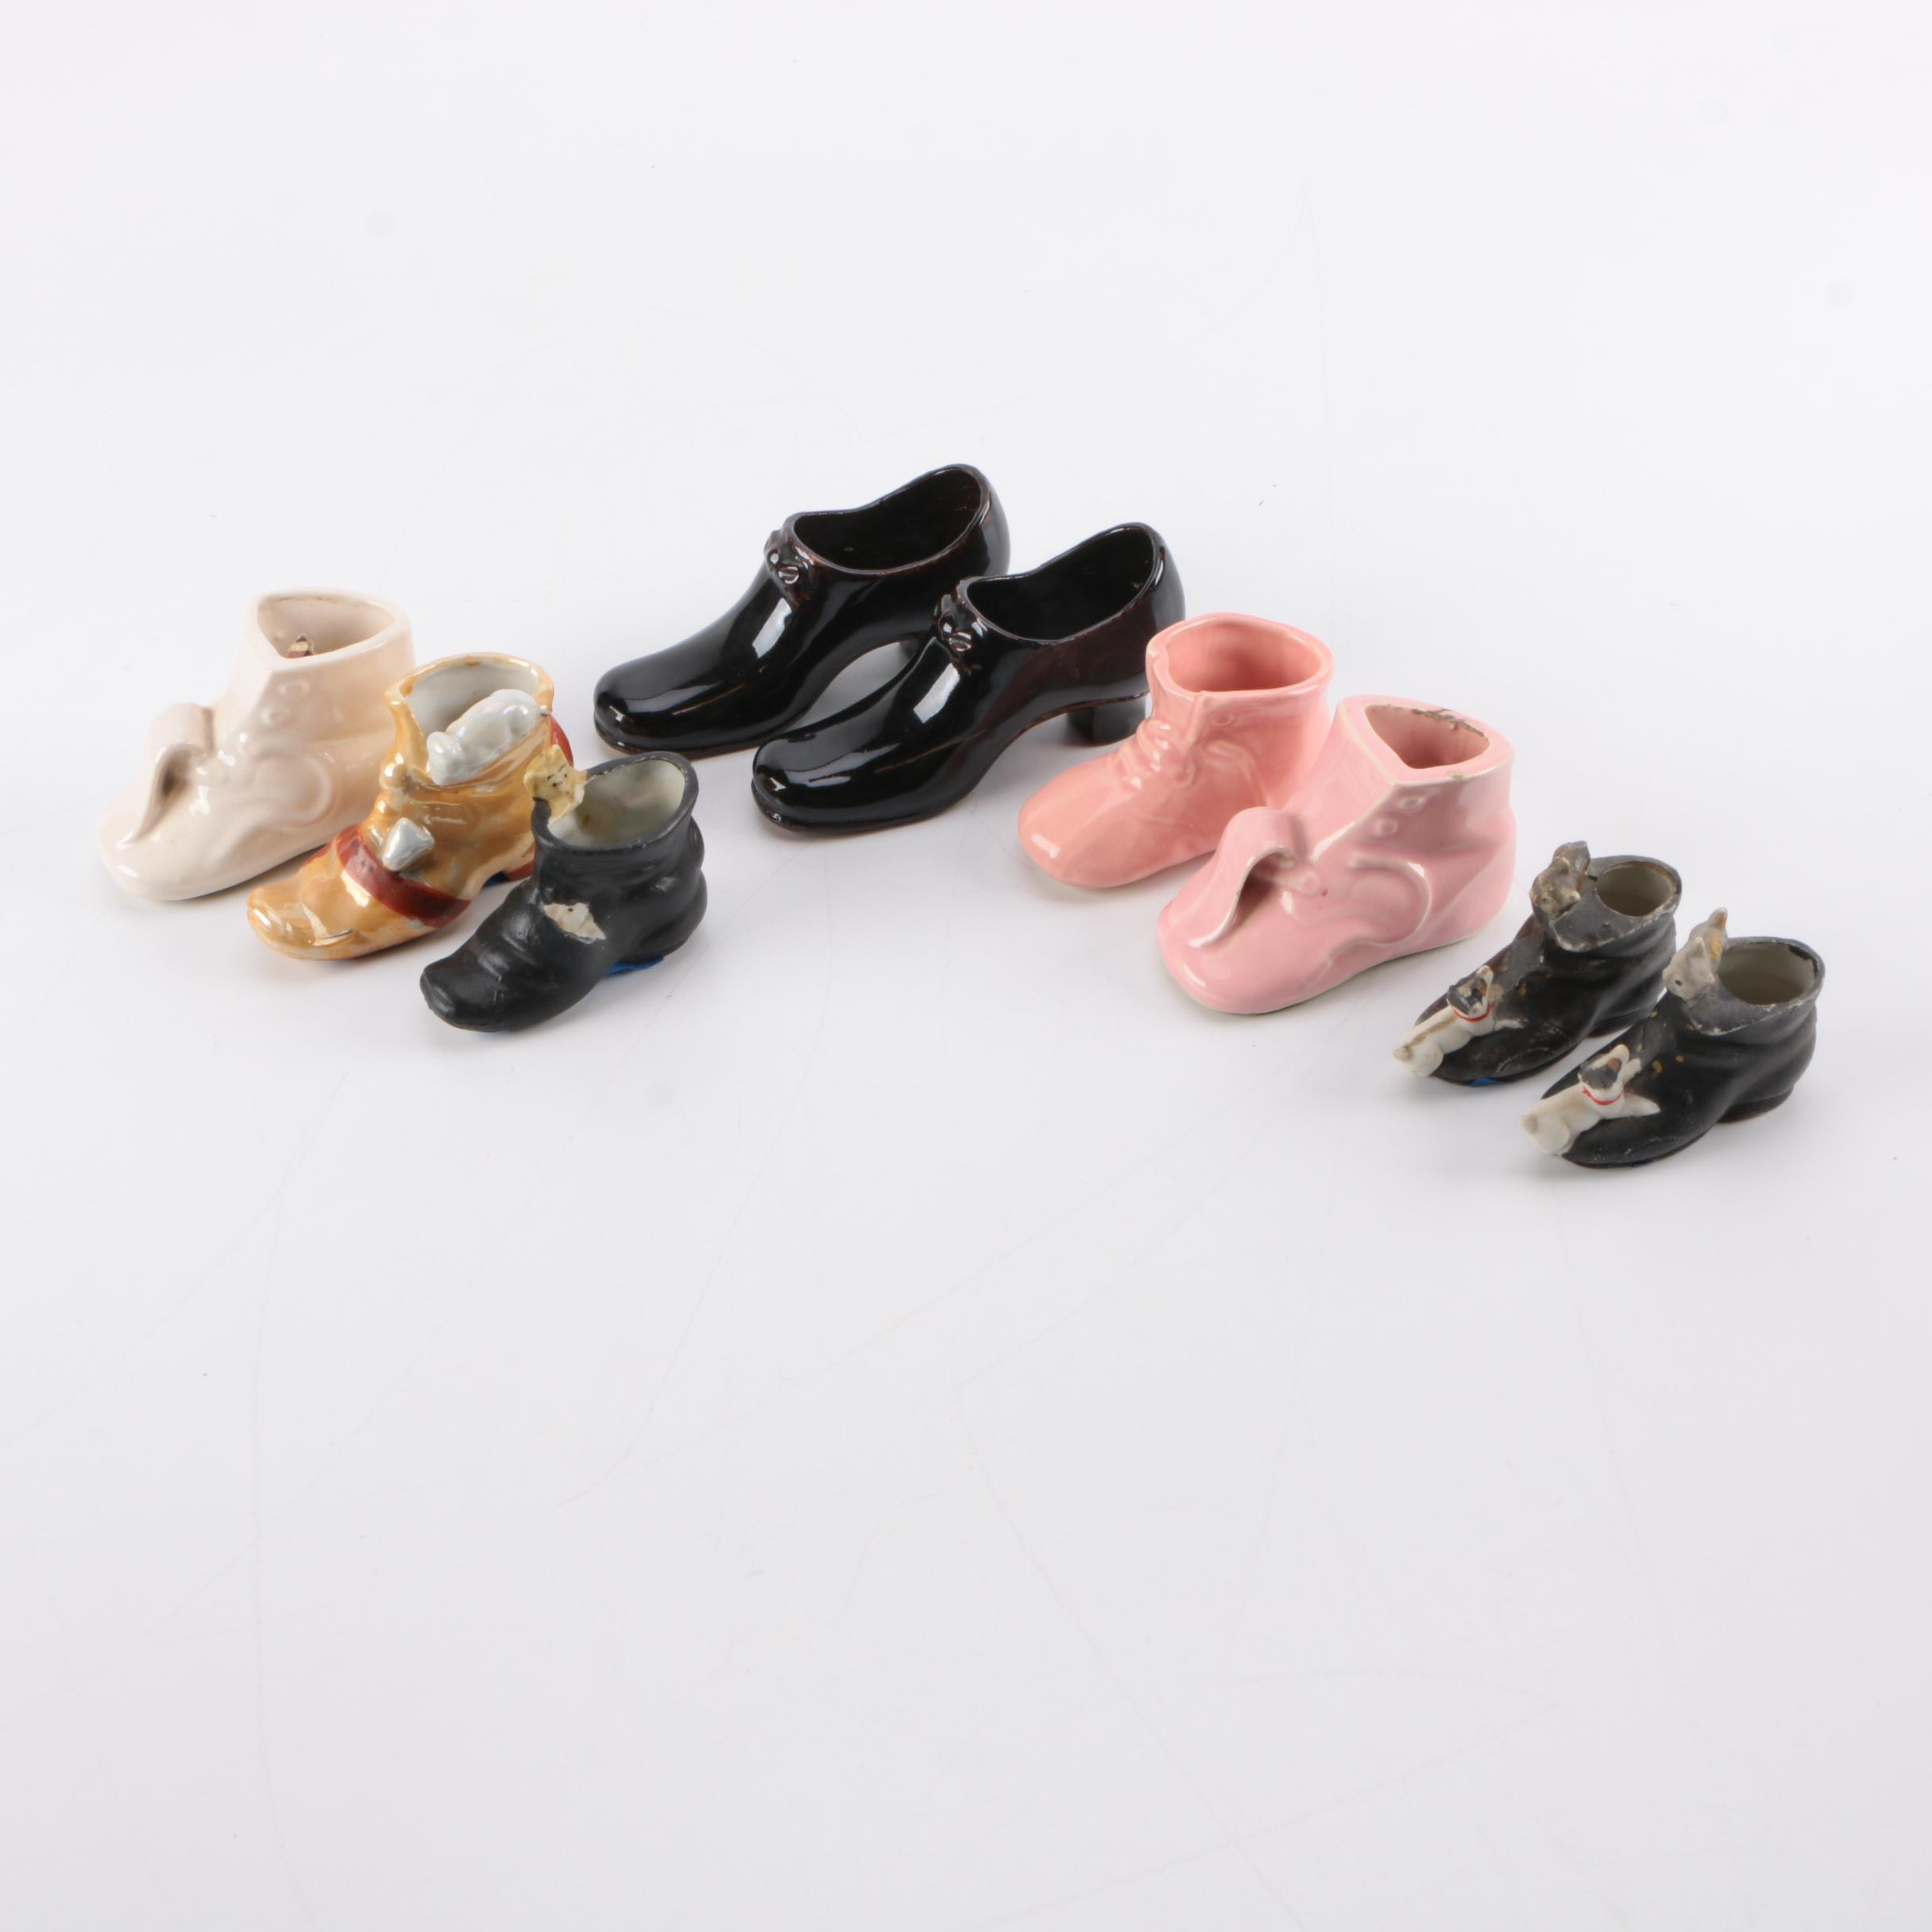 Collection Of Ceramic Shoe Figurines